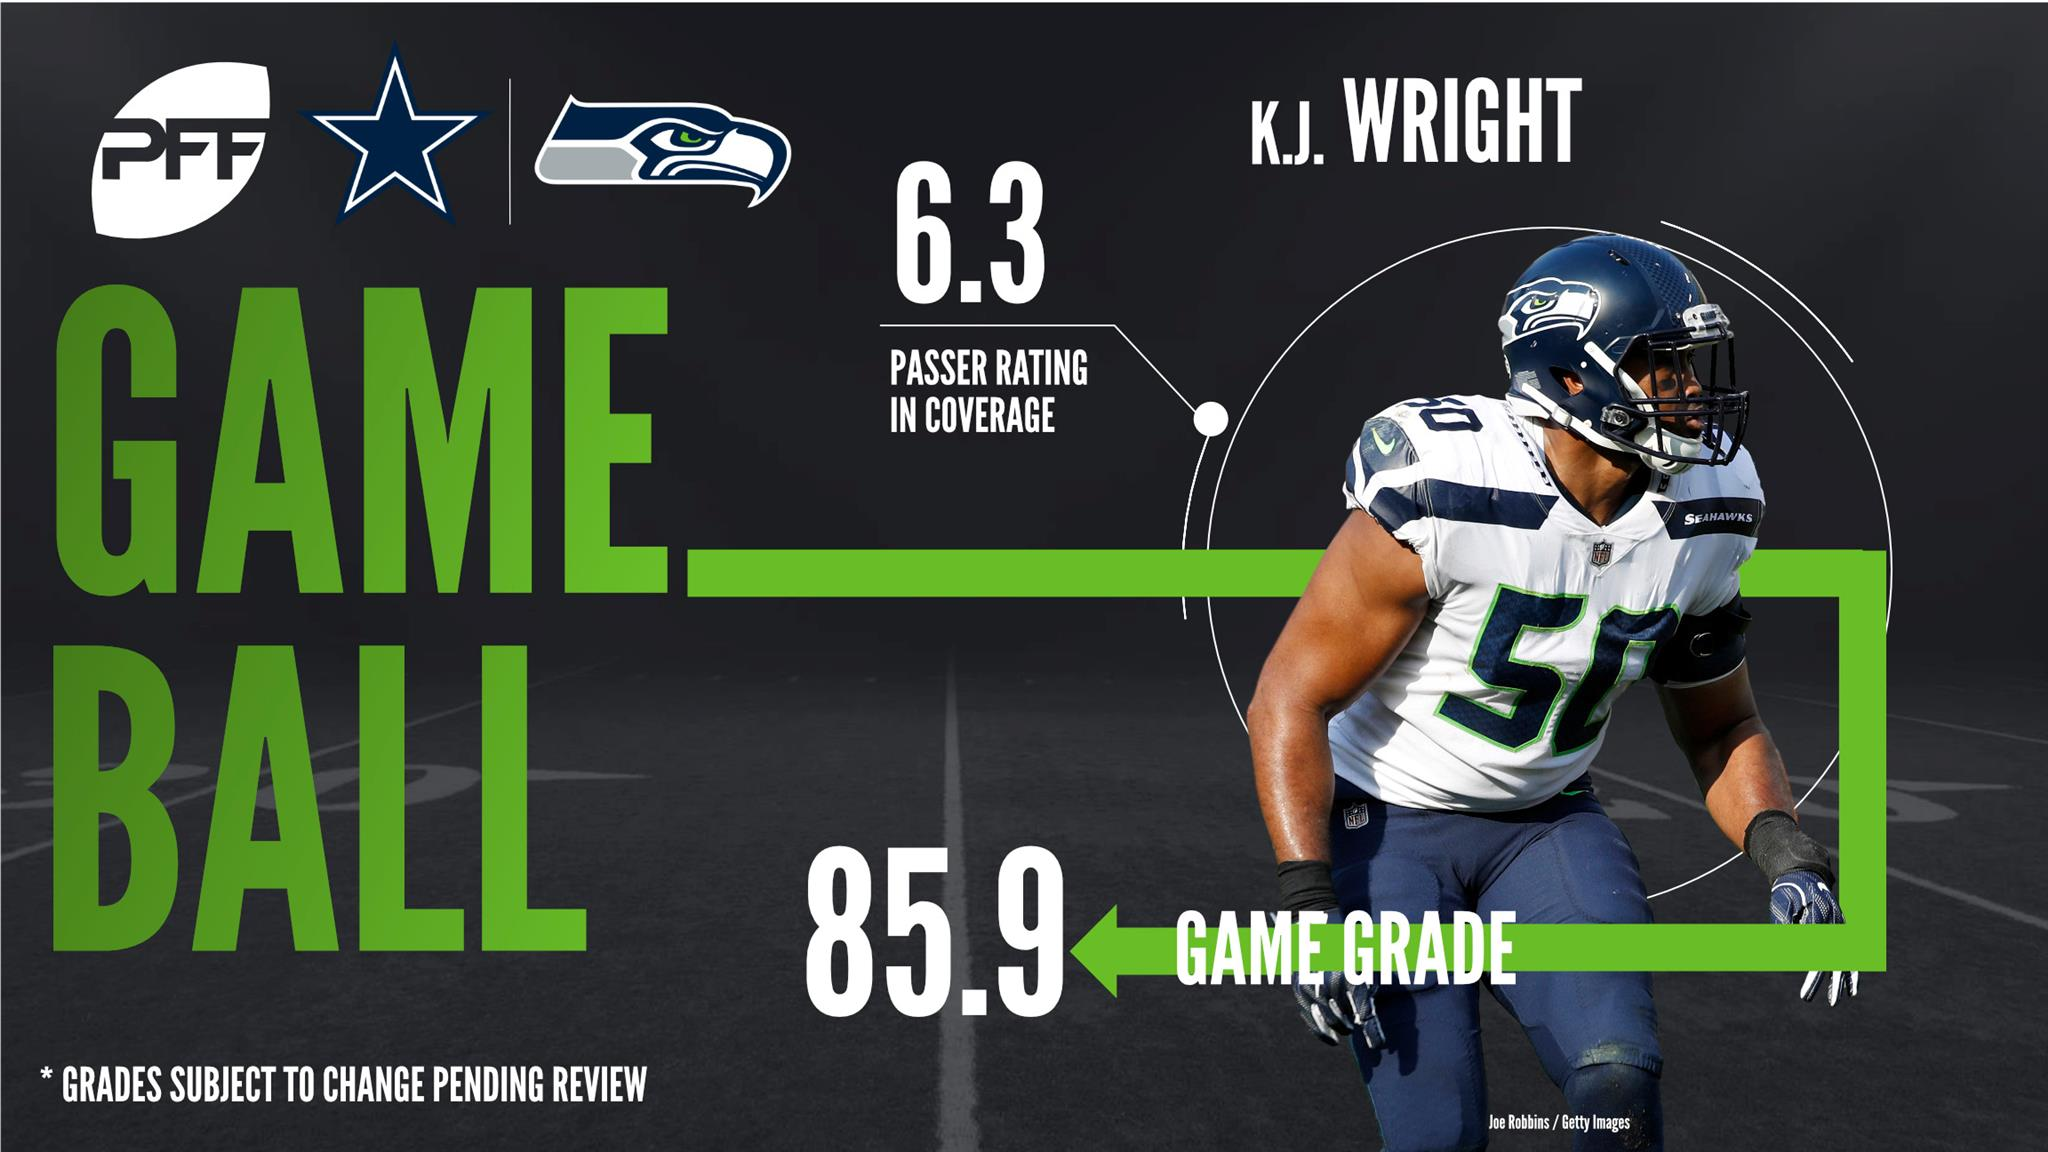 K.J. Wright, linebacker, Seattle Seahawks